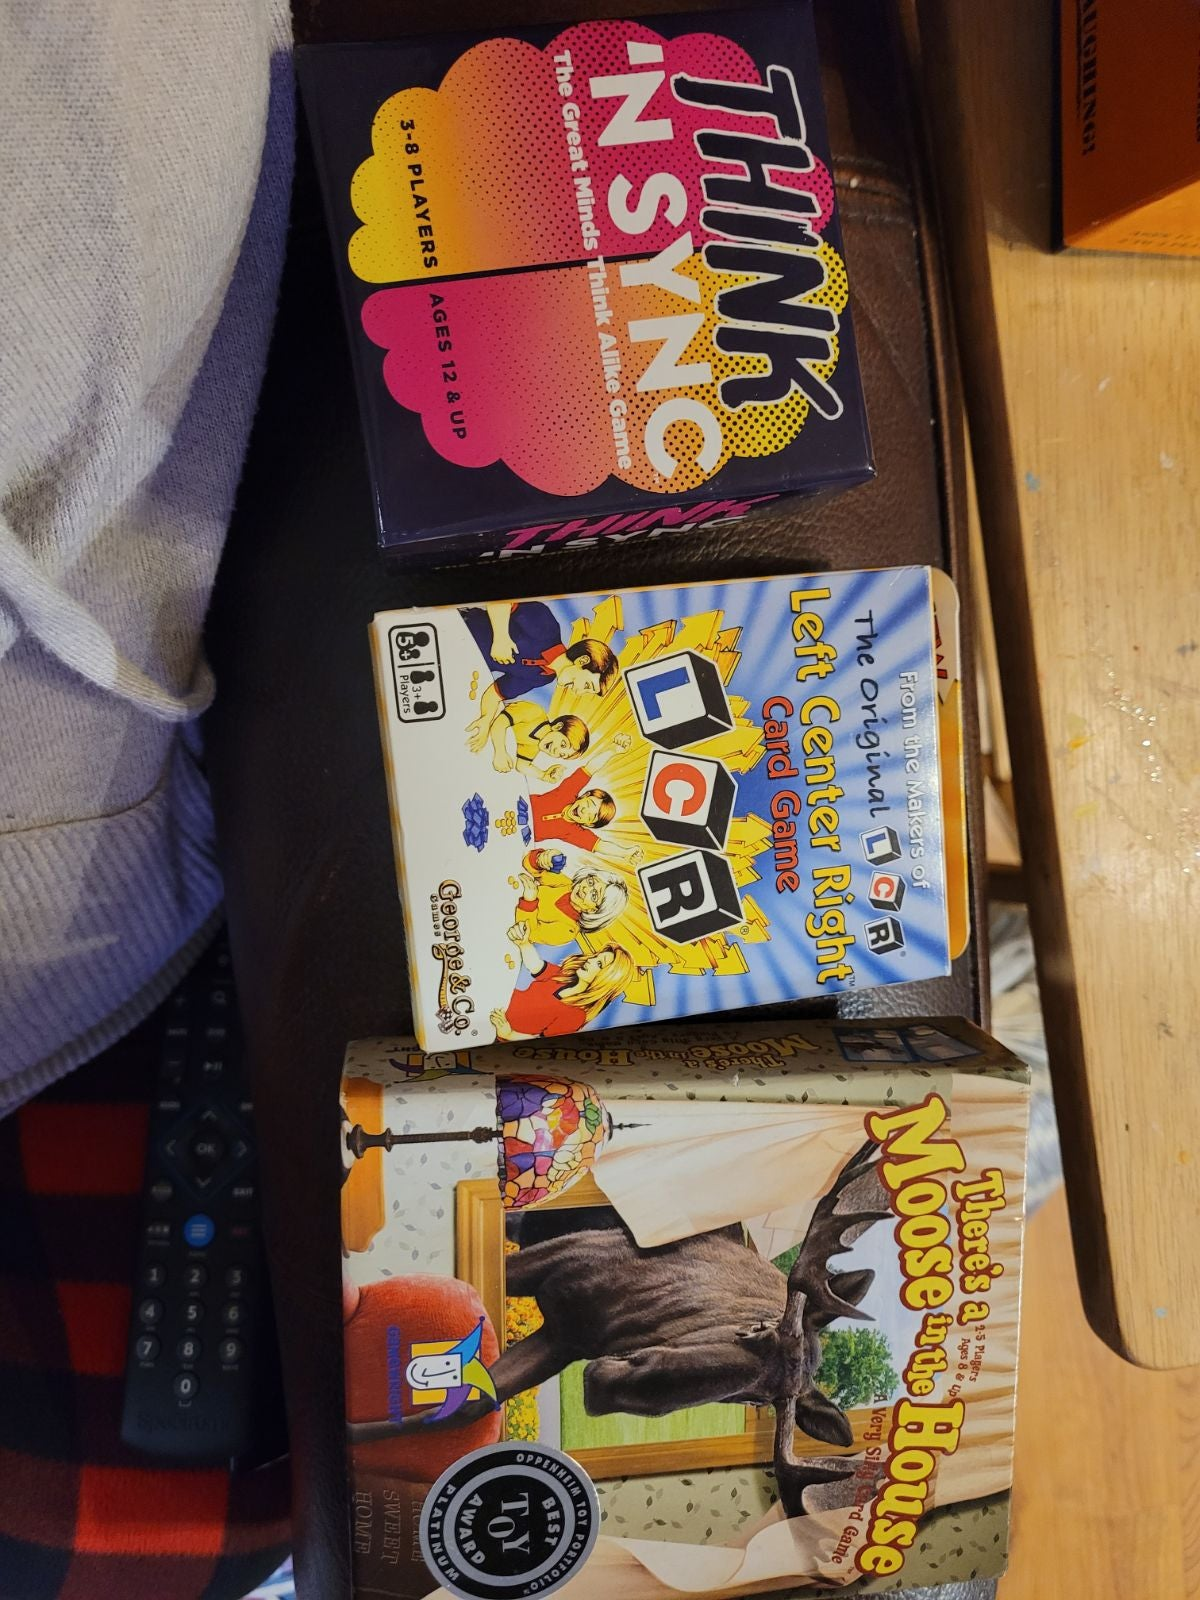 Variety of games